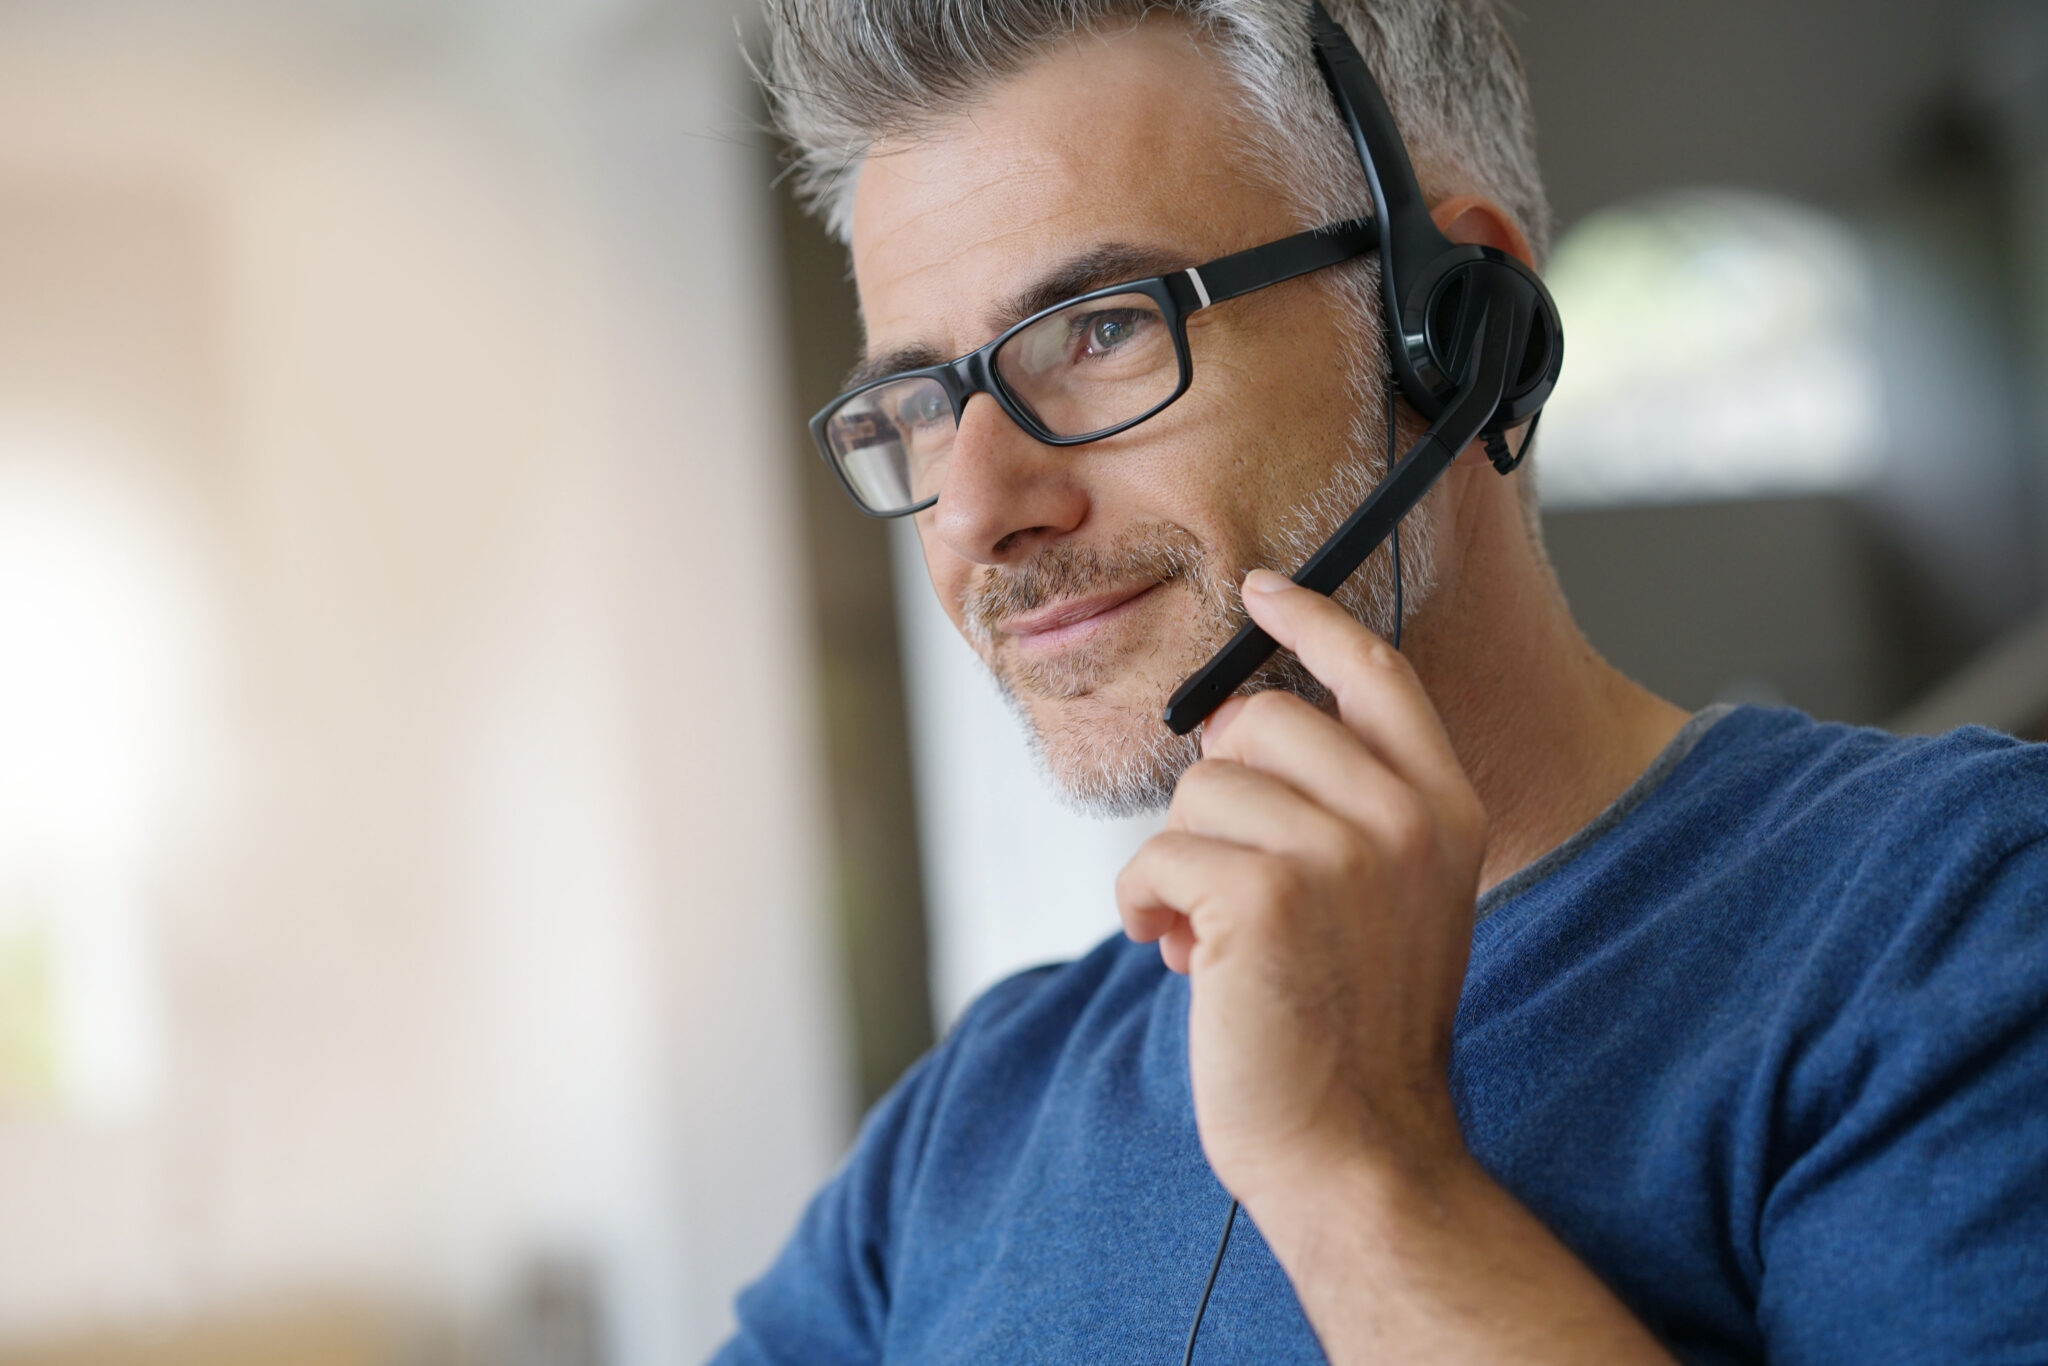 Sales Representative Teleworking From Home Office